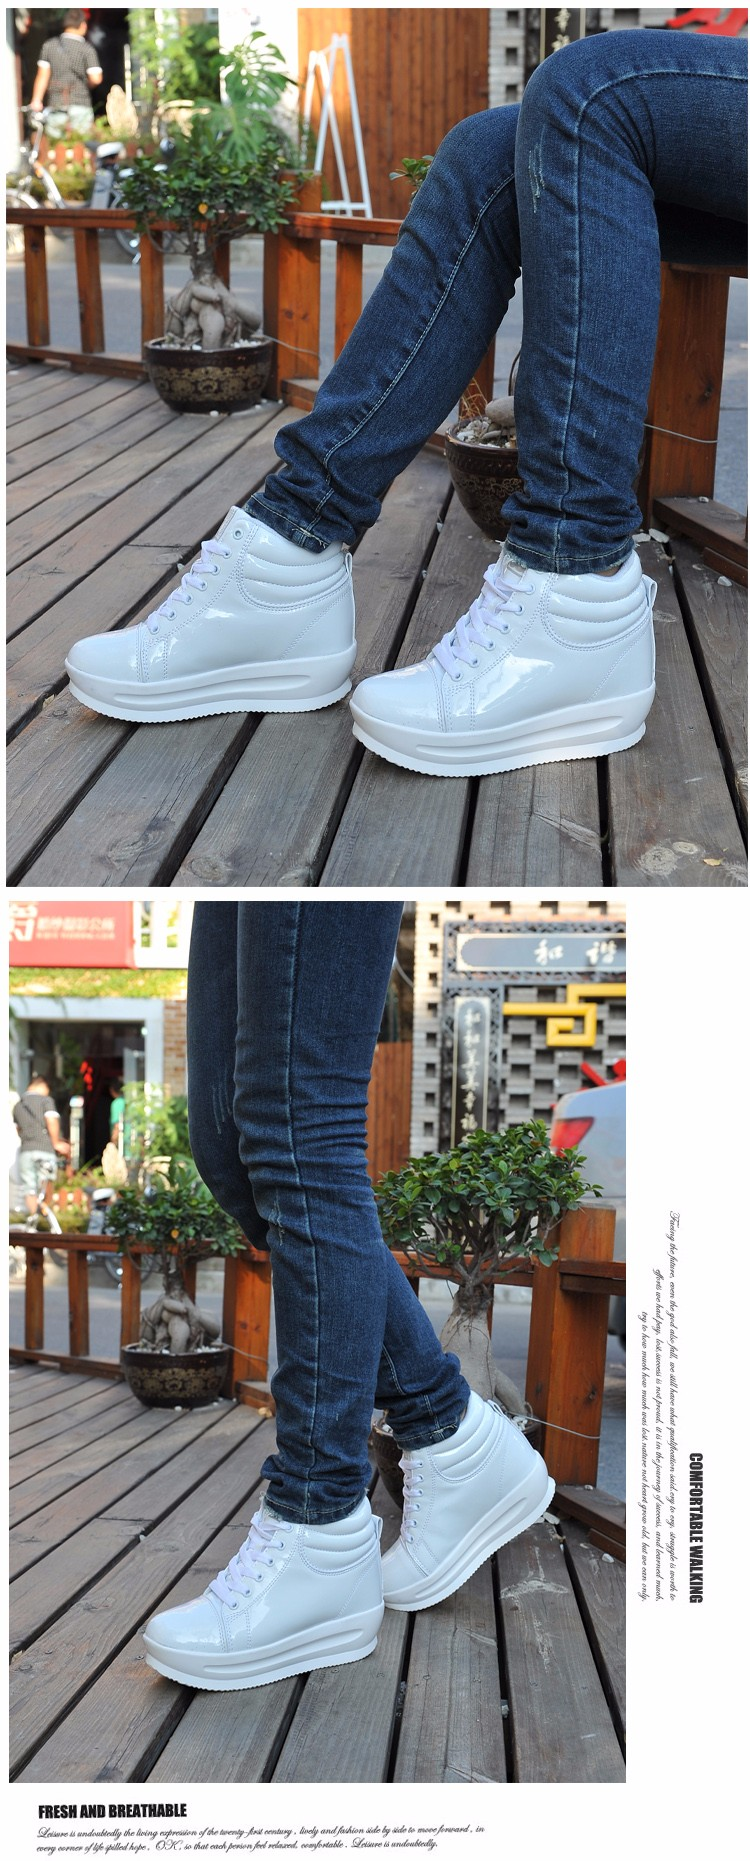 KUYUPP 2016 Fashion Hide Heel Women Casual Shoes Breathable Flat Platform Casual Women Shoes Patent Leather High Top Shoes YD105 (9)